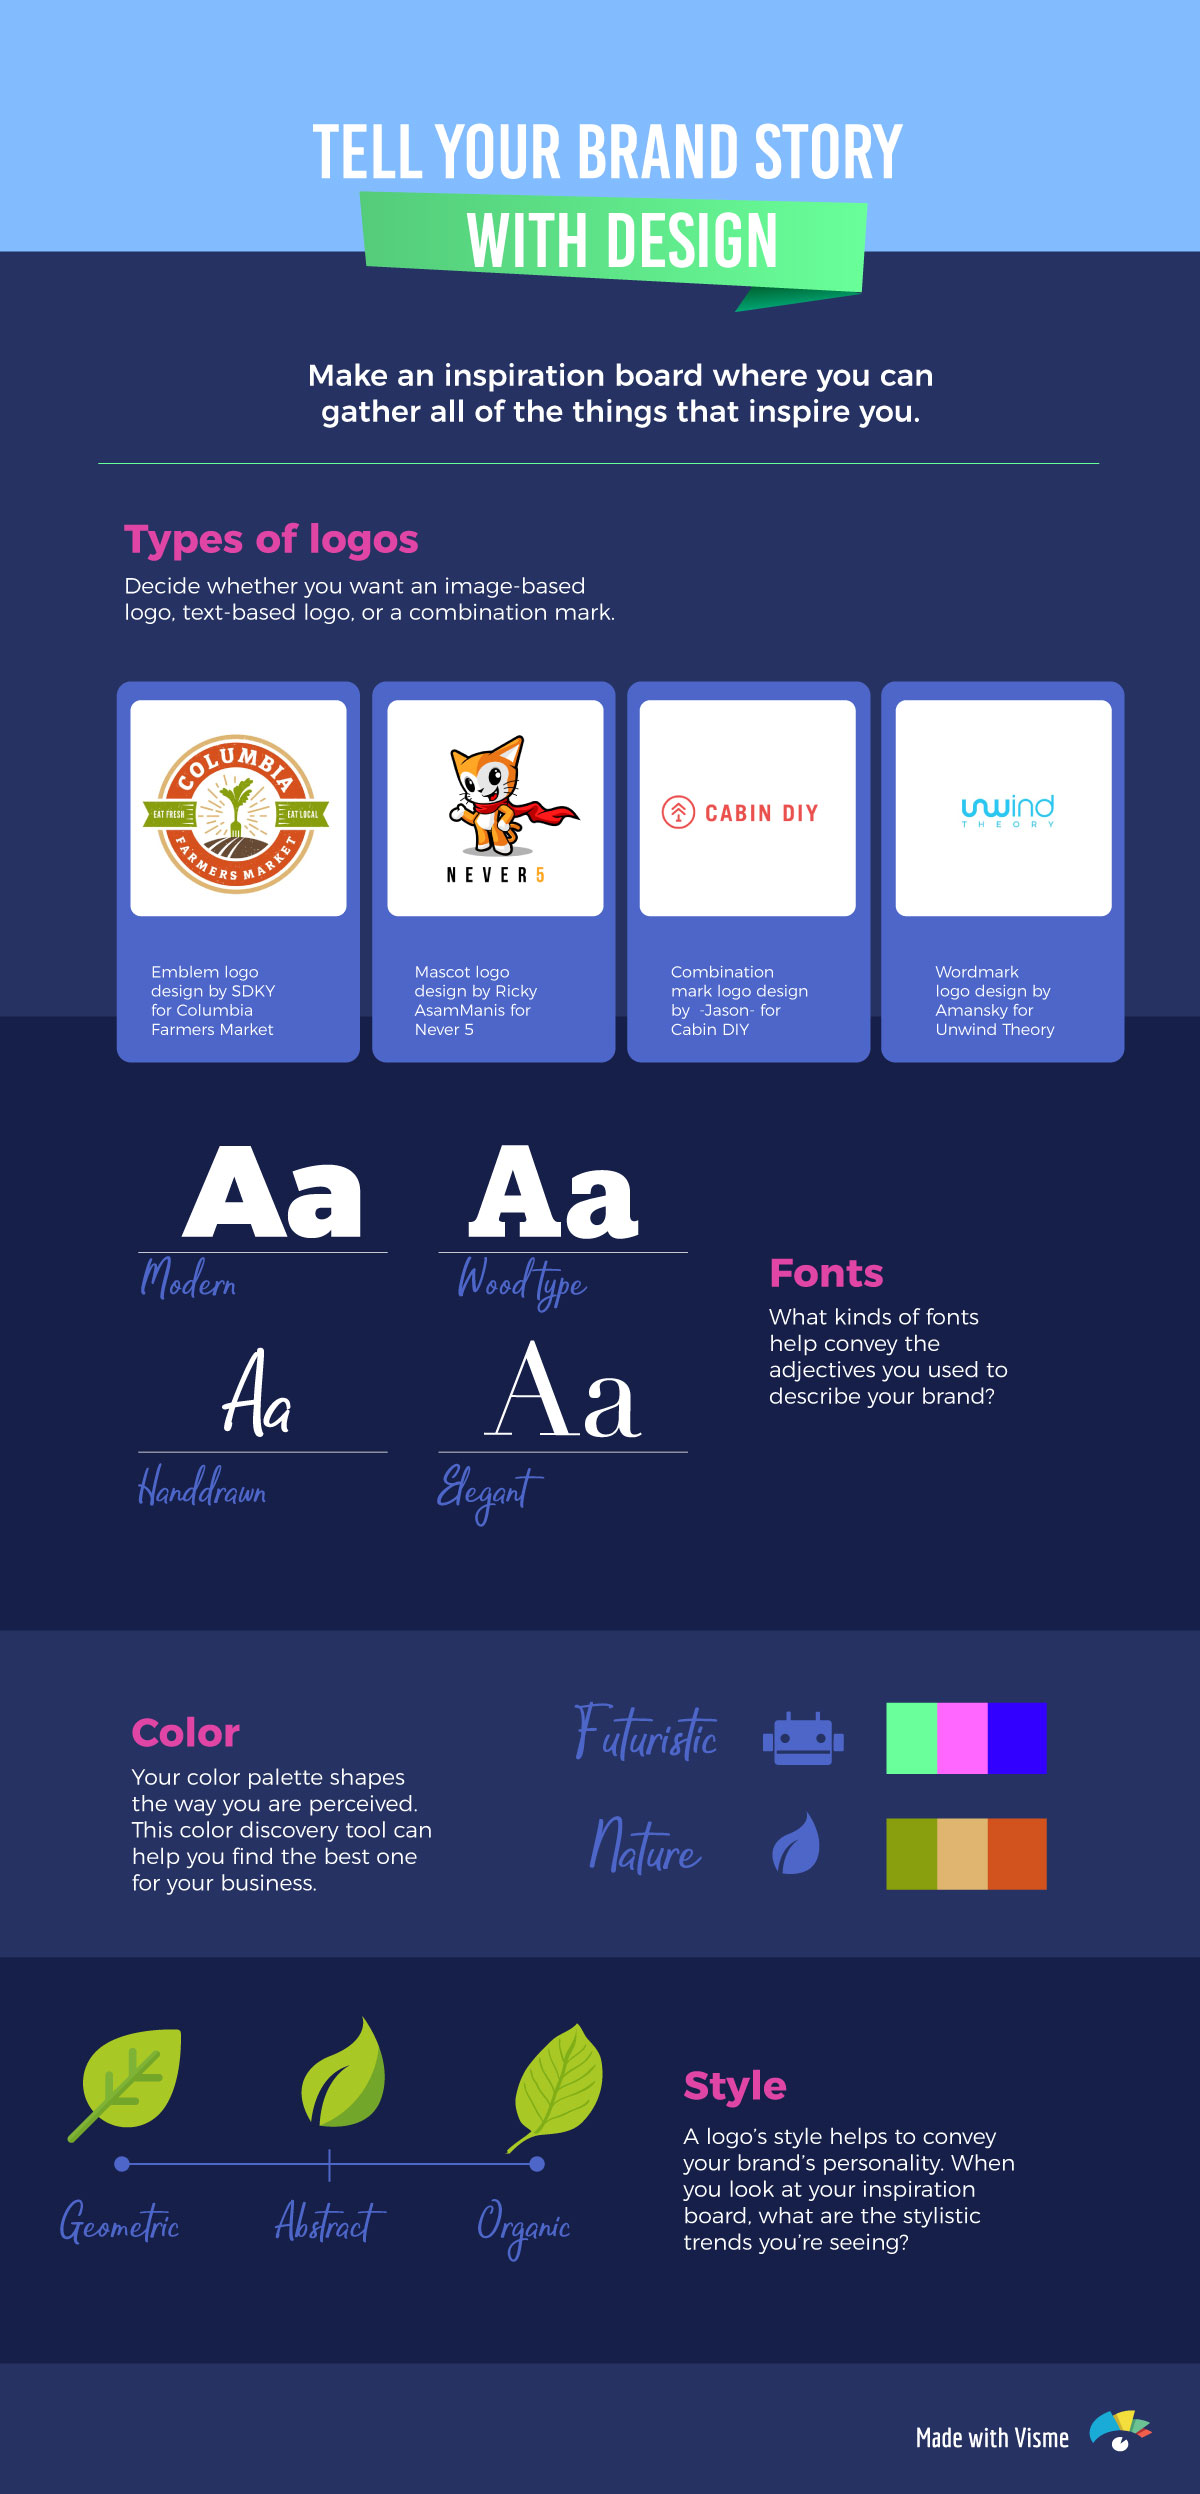 how to brainstorm logo ideas how to tell your brand story